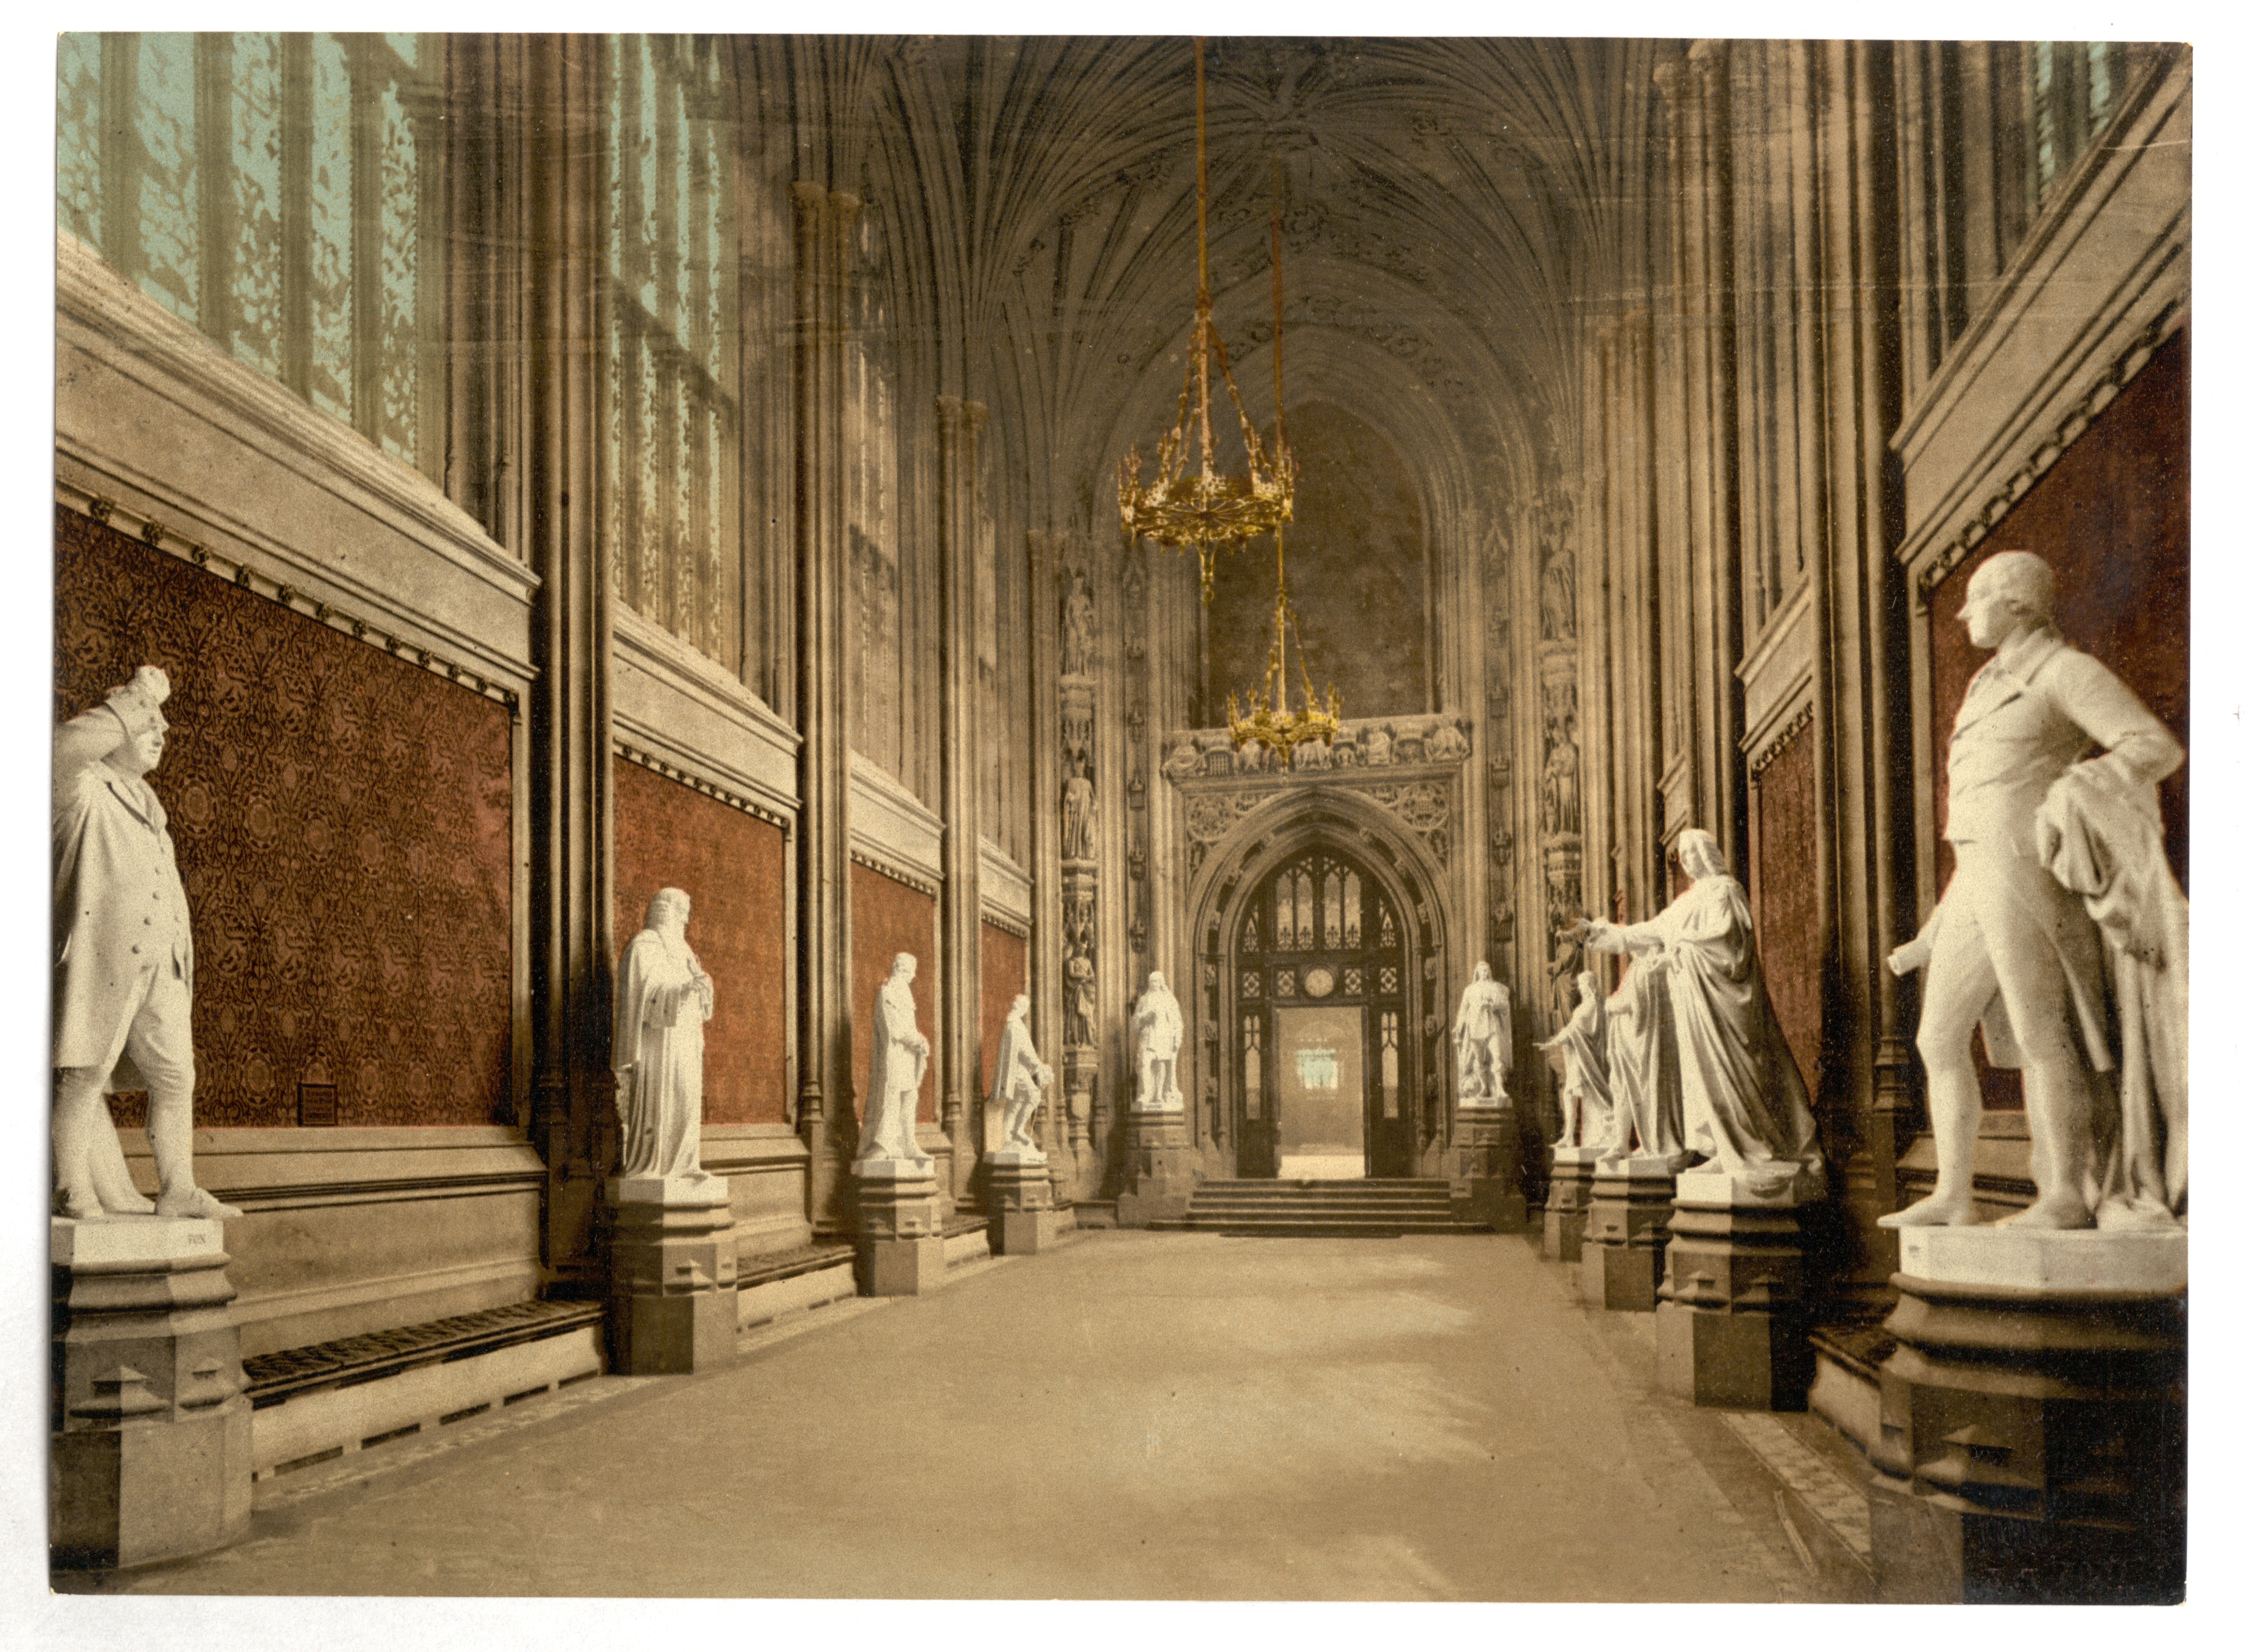 Beau File:Houses Of Parliament, St. Stephenu0027s Hall (Interior), London,